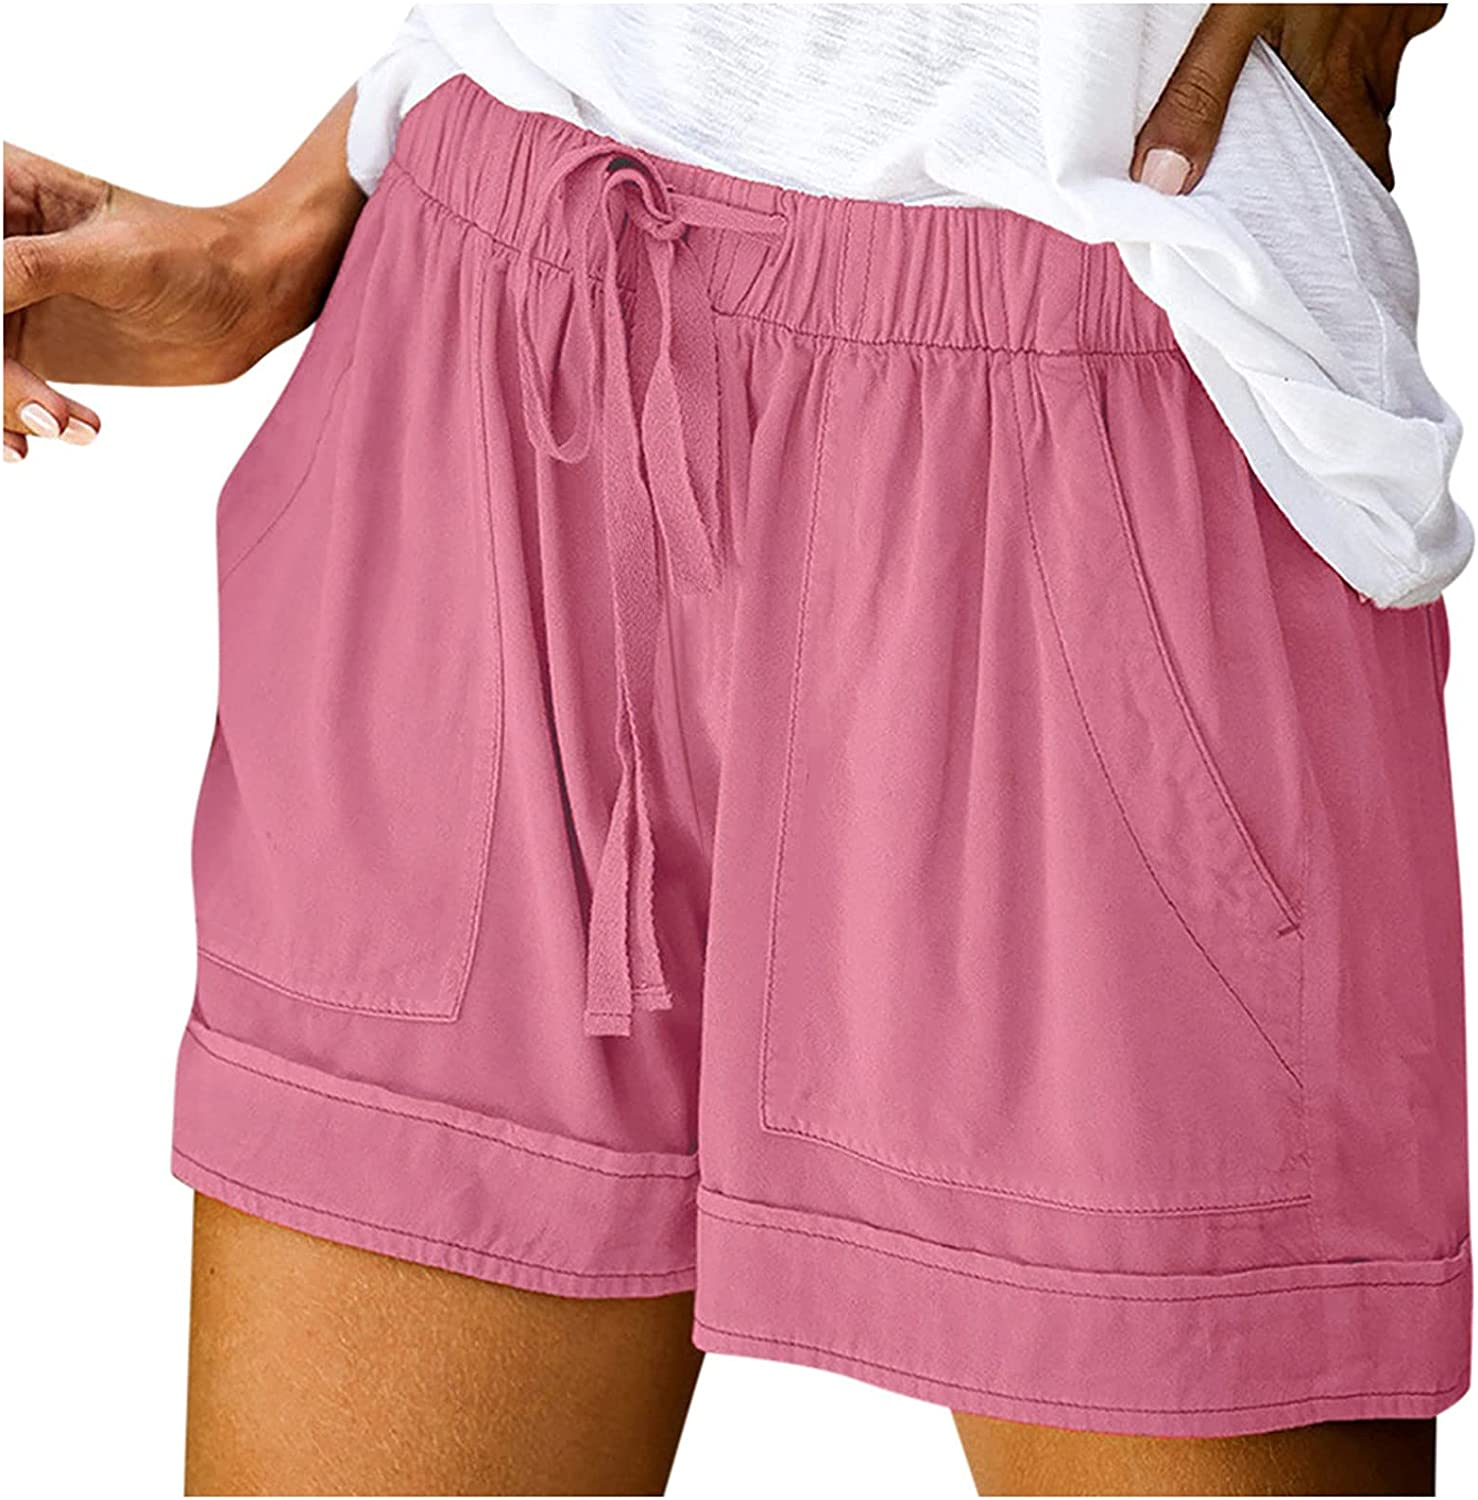 BEUU Womens Summer Casual Drawstring Elastic Waist Comfy Lounge Shorts Pure Color Athletic Workout Shorts with Pockets